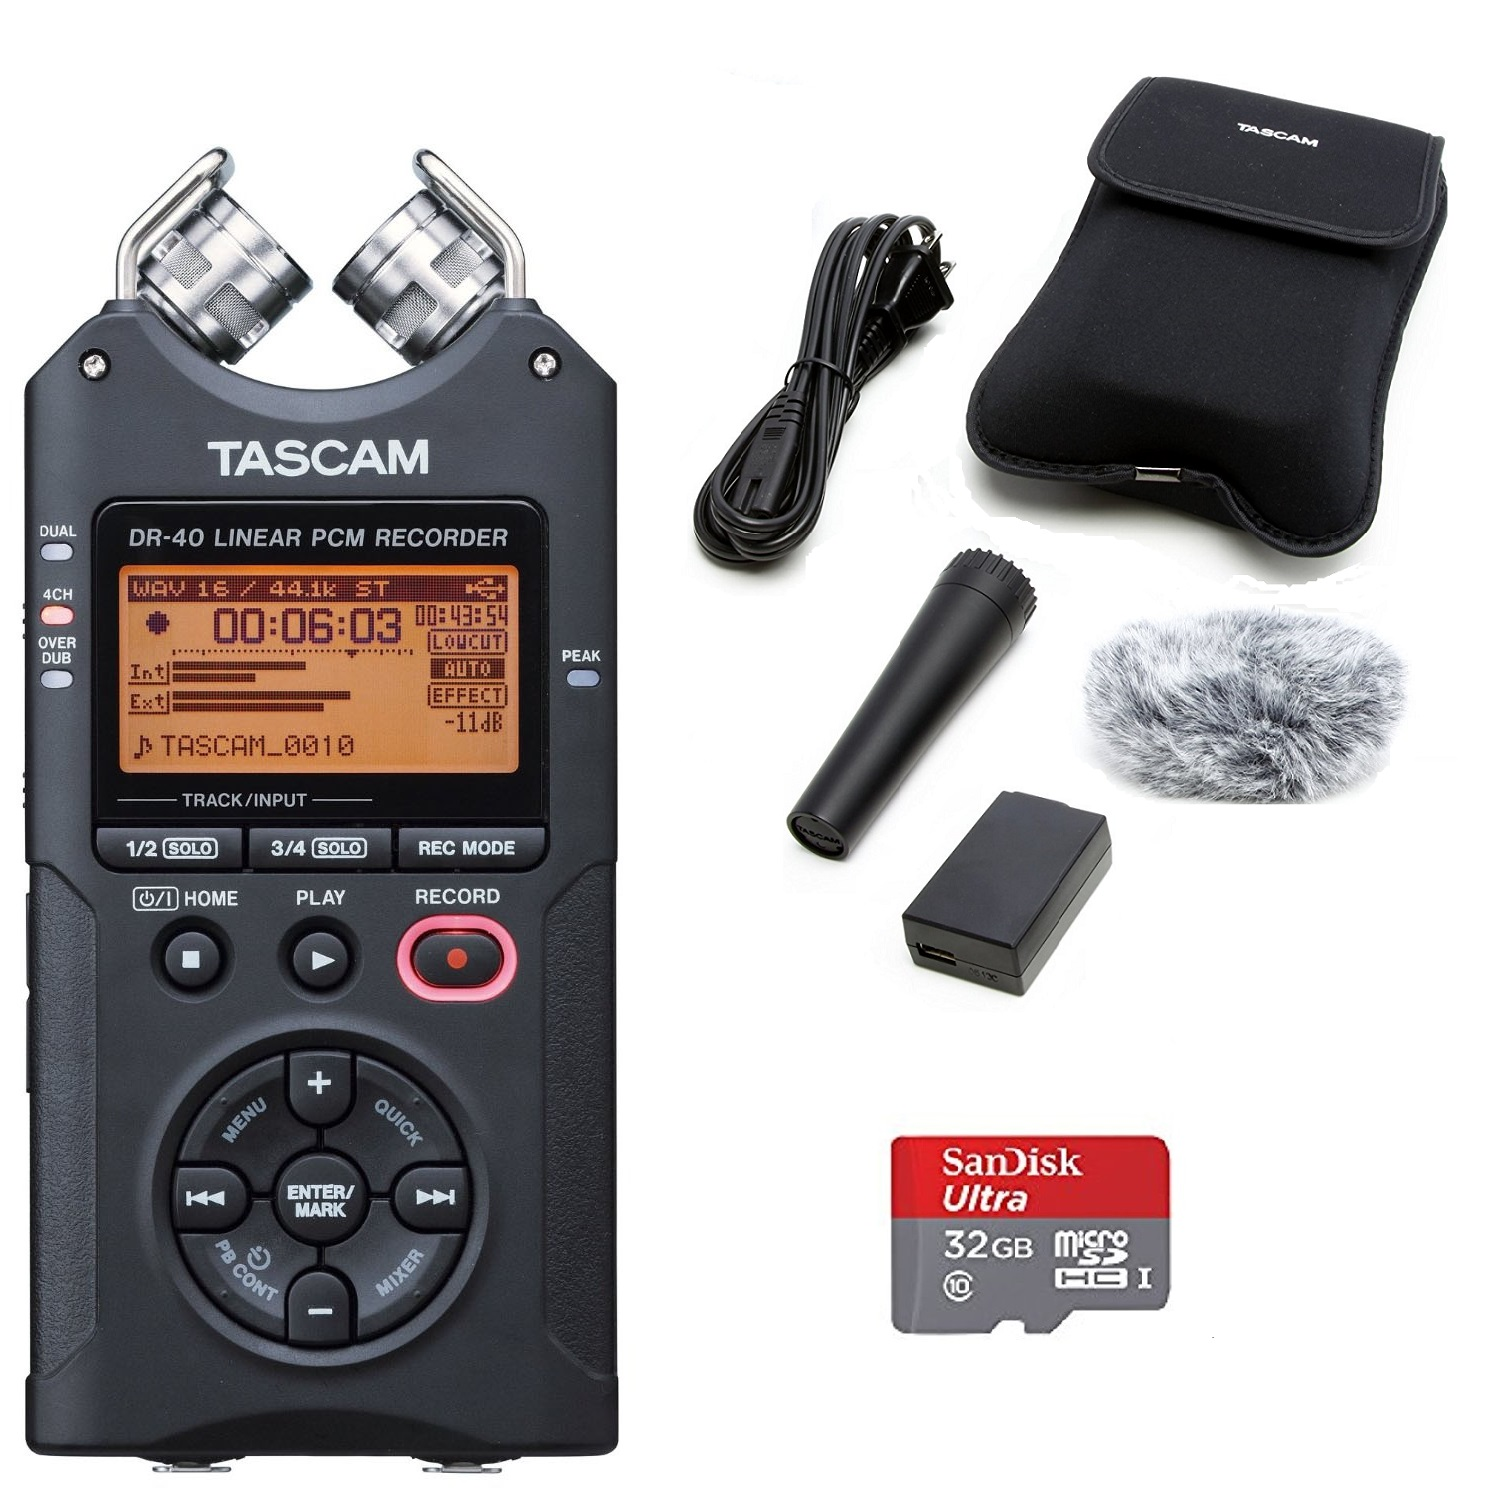 TASCAM DR-40 Digital Recorder with Tascam Accessory Kit and 32GB Micro SD Card